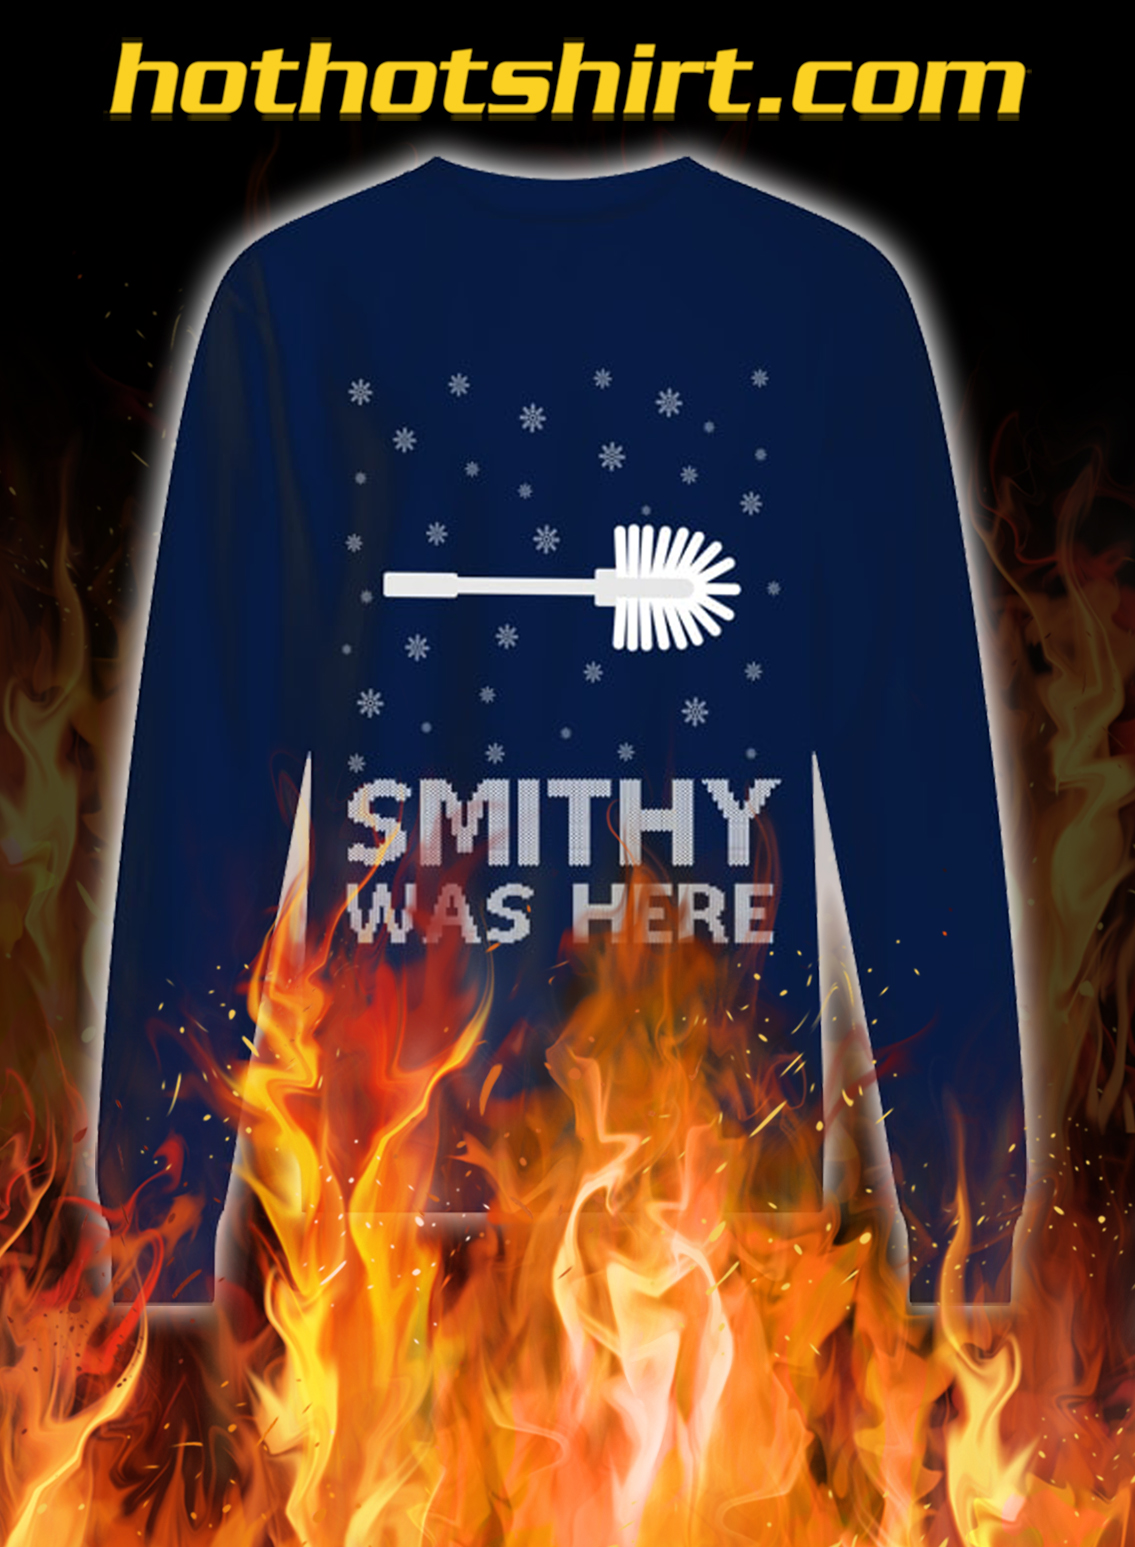 Smithy was here ugly christmas sweater- navy